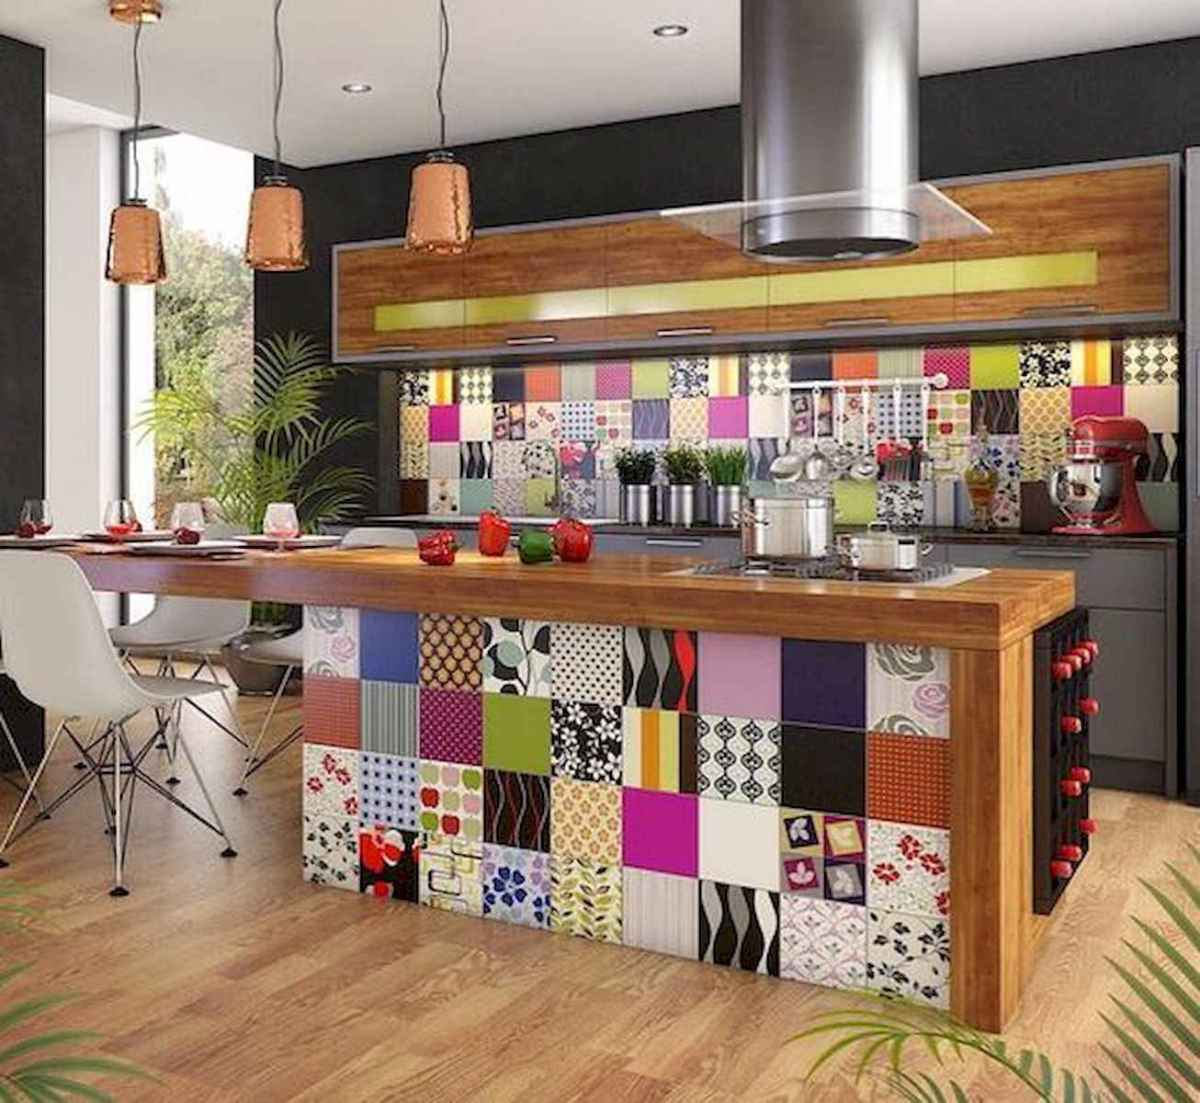 80+ Favorite Colorful Kitchen Decor Ideas And Remodel for Summer Project (58)